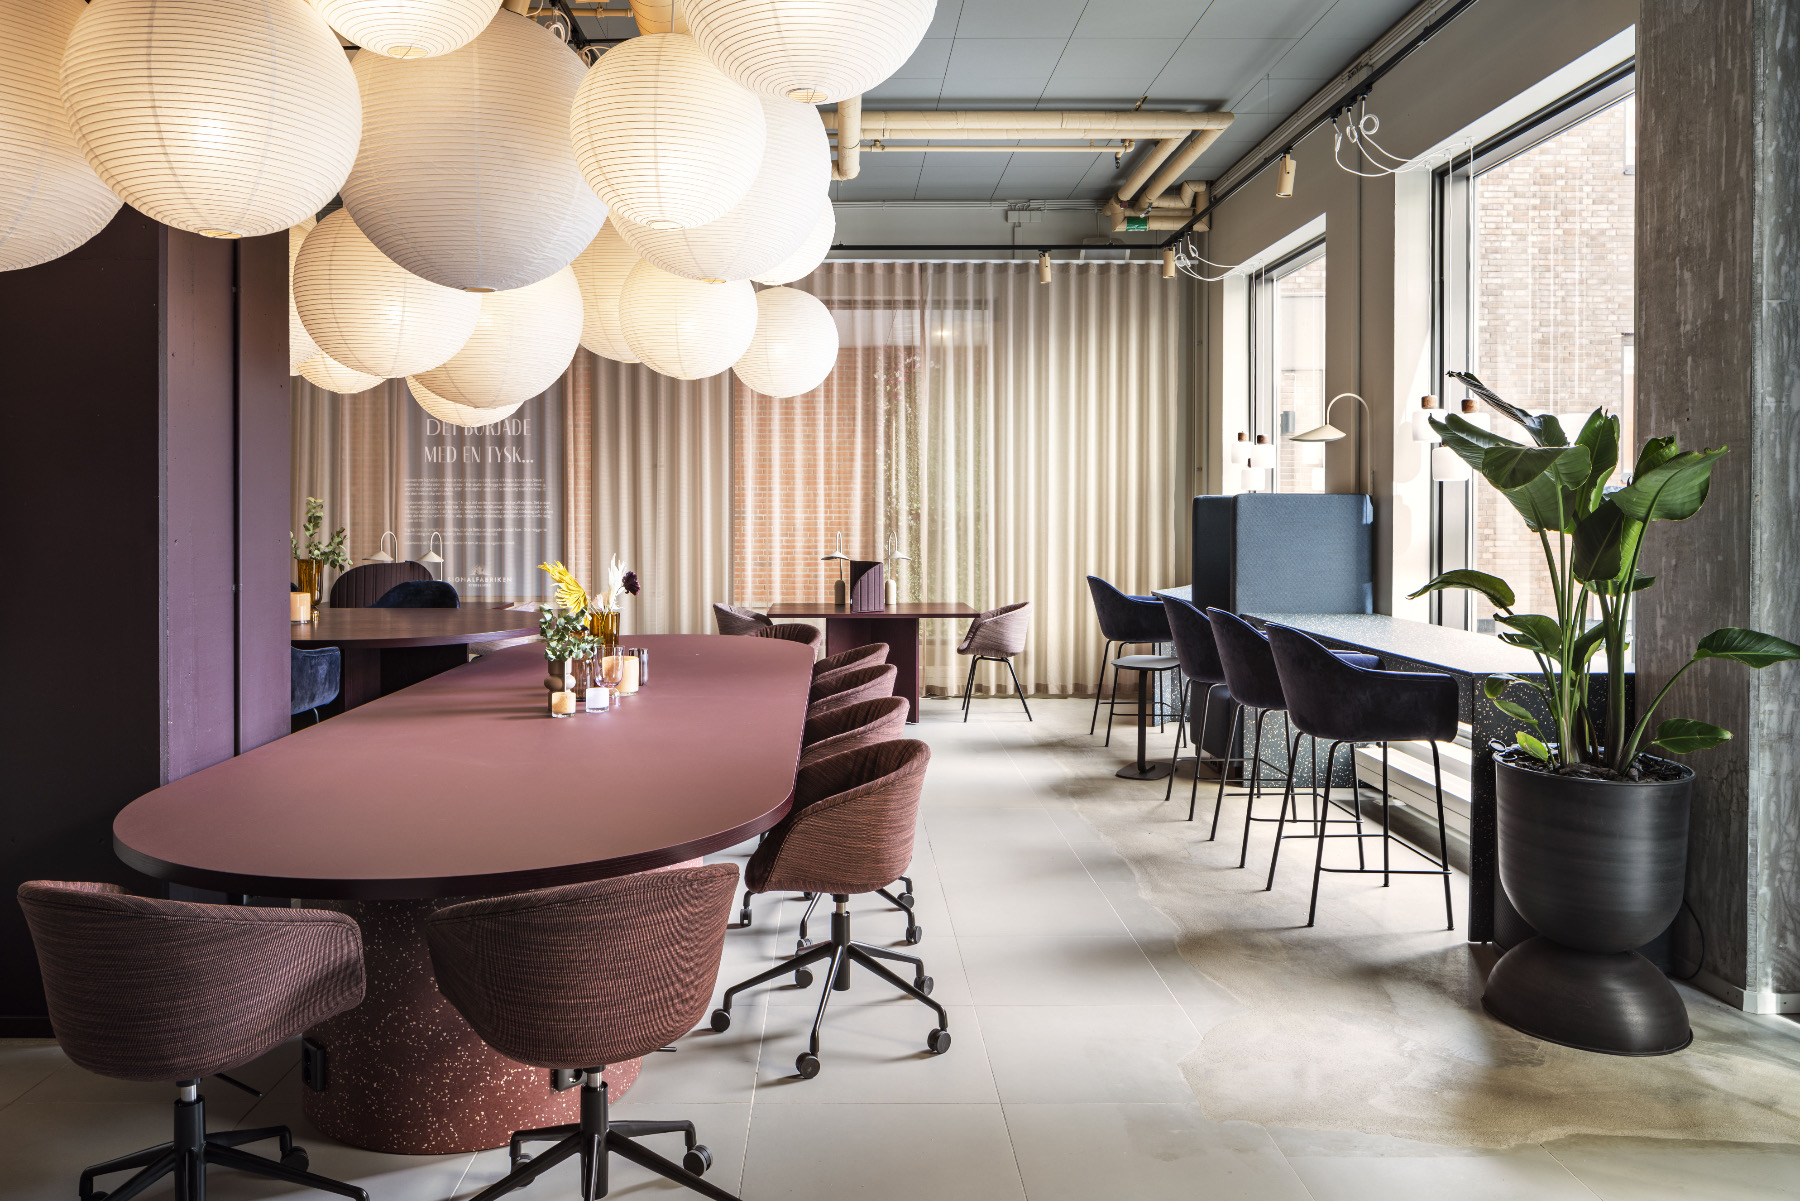 A Tour of Helio's Sundbyberg Coworking Space